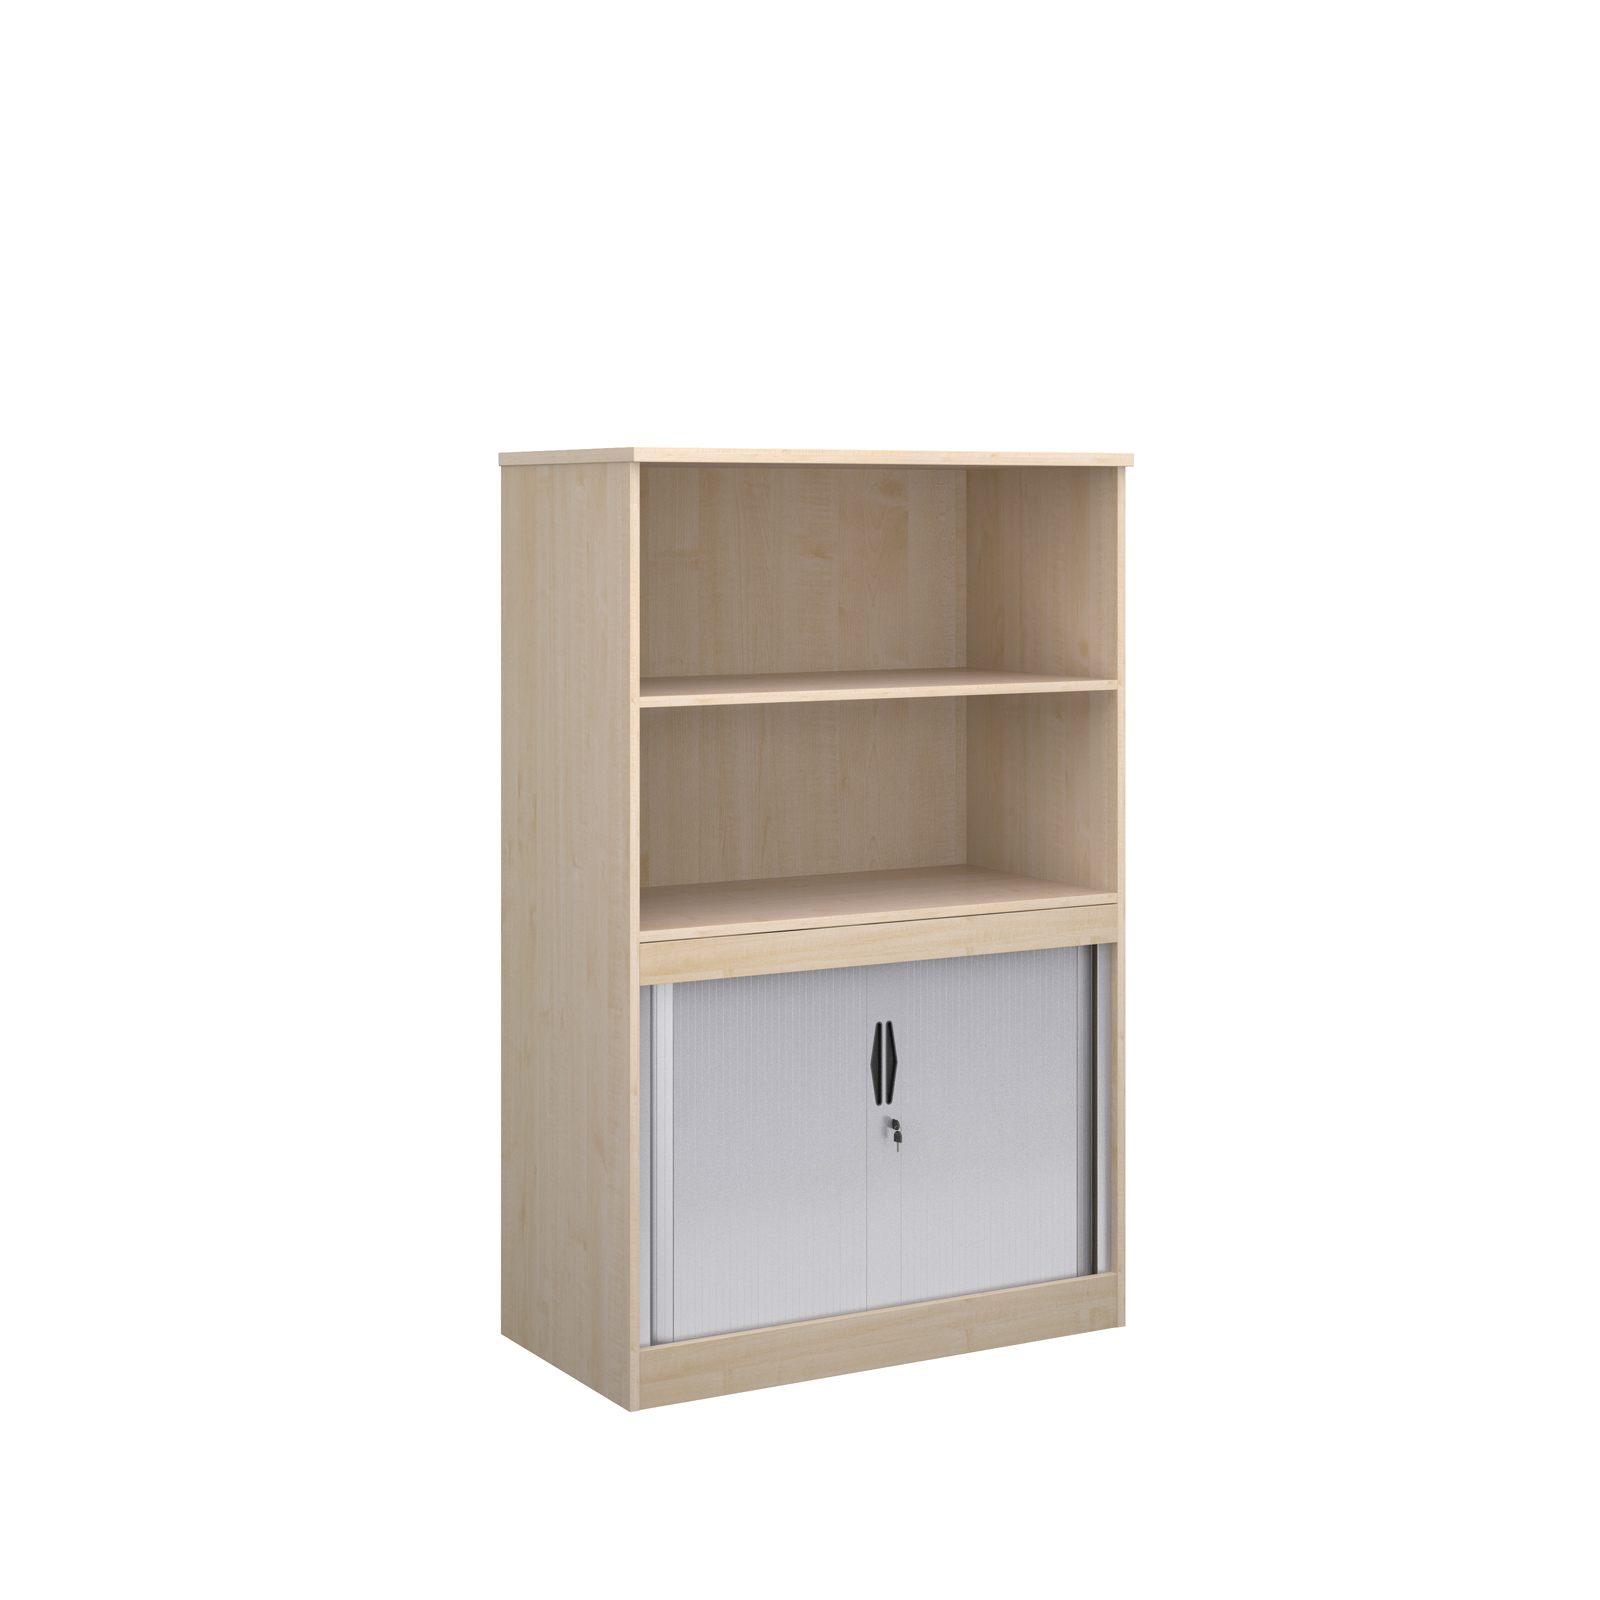 1600 System Storage half tambour, half cupboard in maple